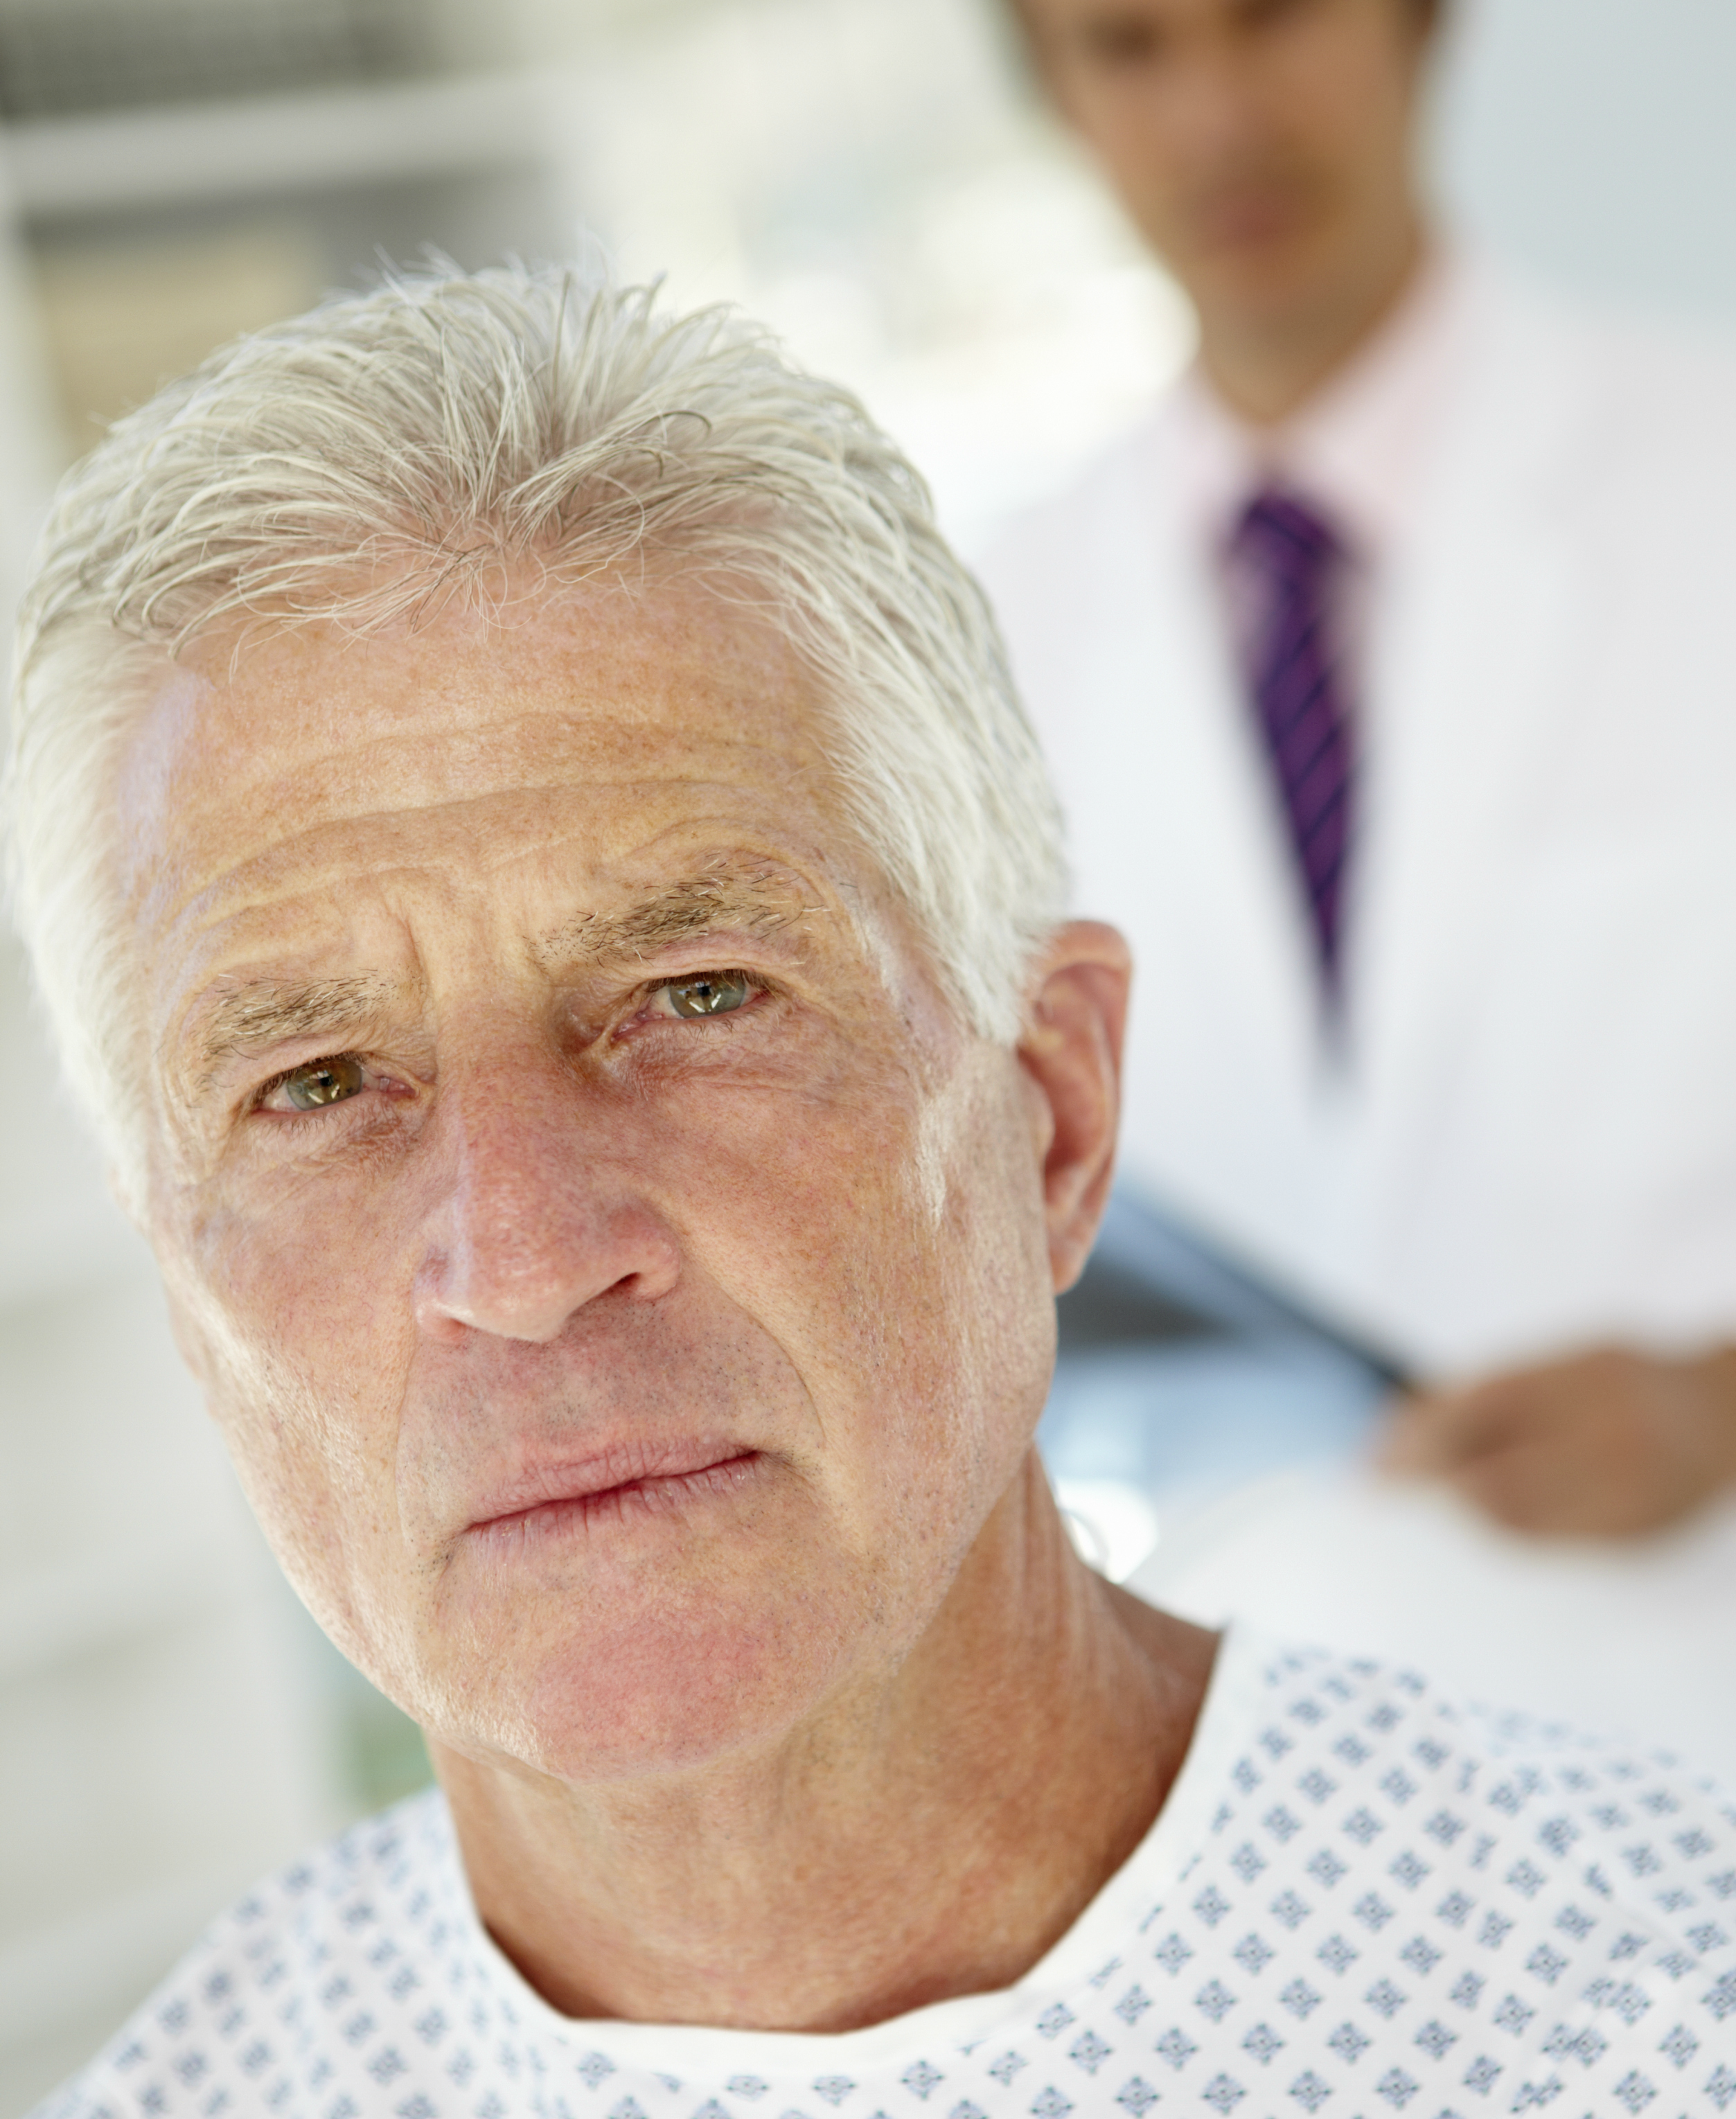 Older male patient with physician